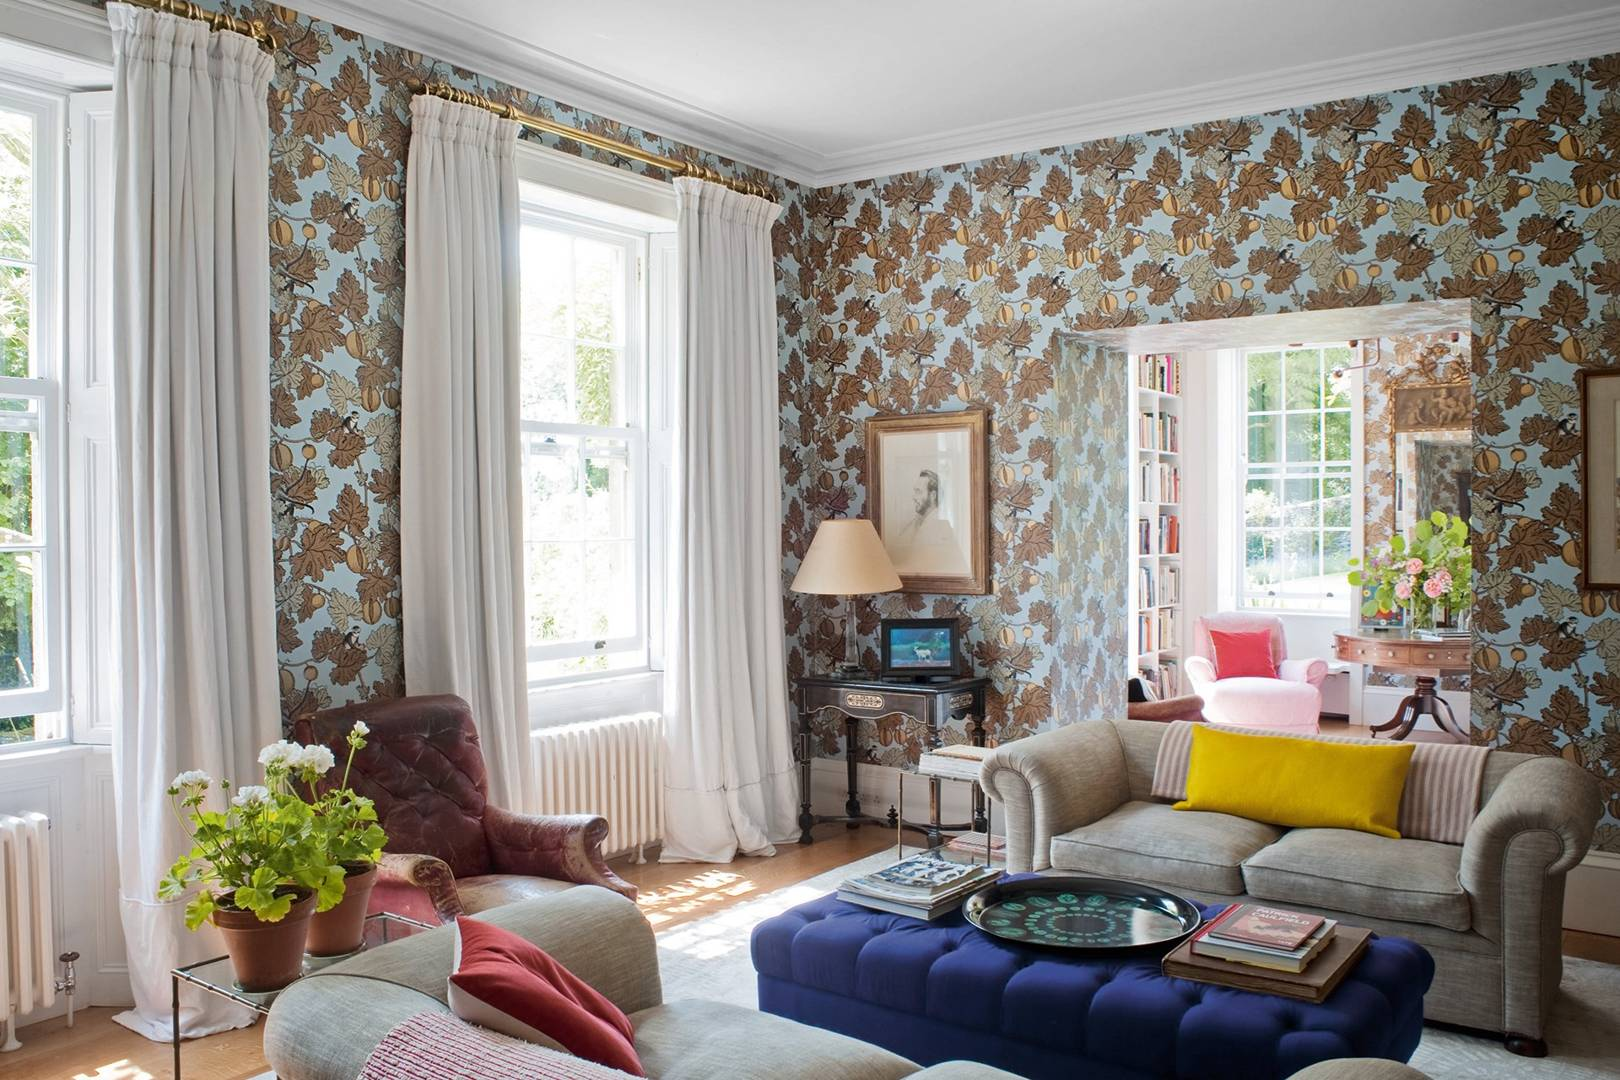 Curtains and blinds   House & Garden